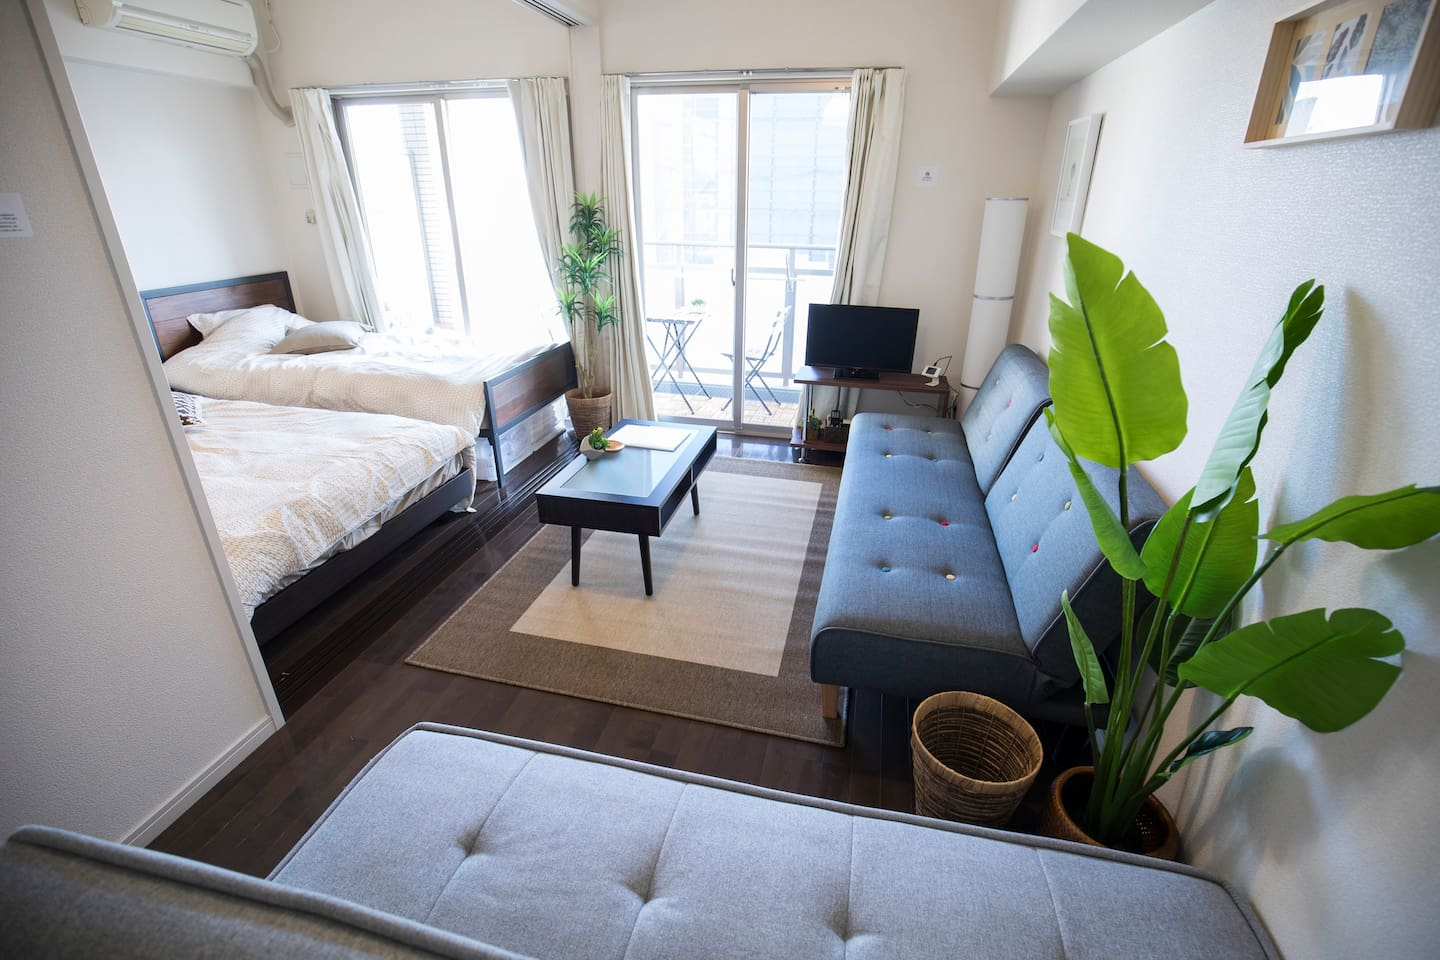 Sunny Living Quarters walking distance to Canal City, Nakasu, Tenjin, and Hakata Area.